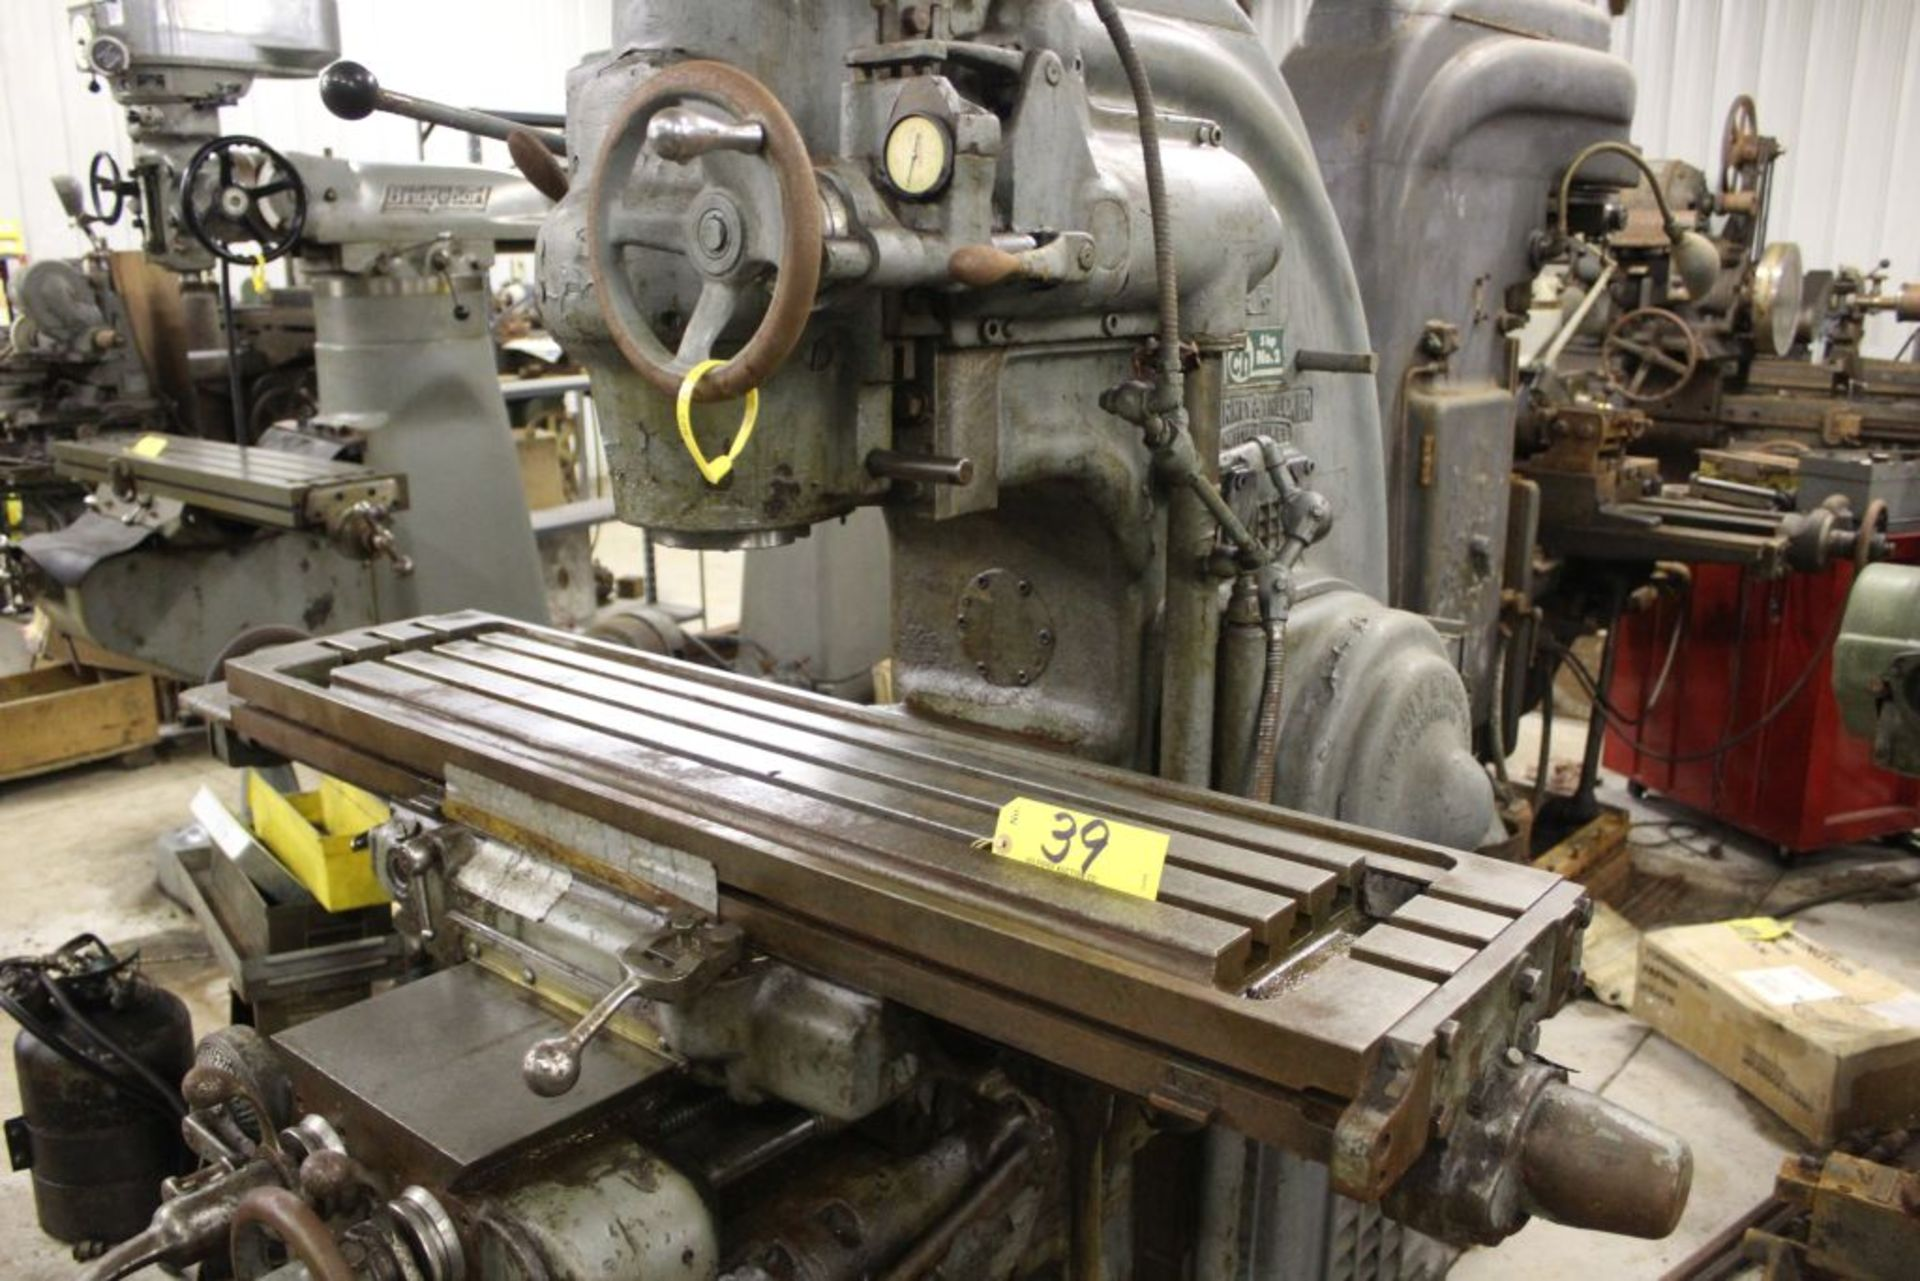 """Milwaukee K/T mill, model CH No. 2, sn 2-8910, 5 hp., 51"""" x 12"""" bed. - Image 3 of 4"""